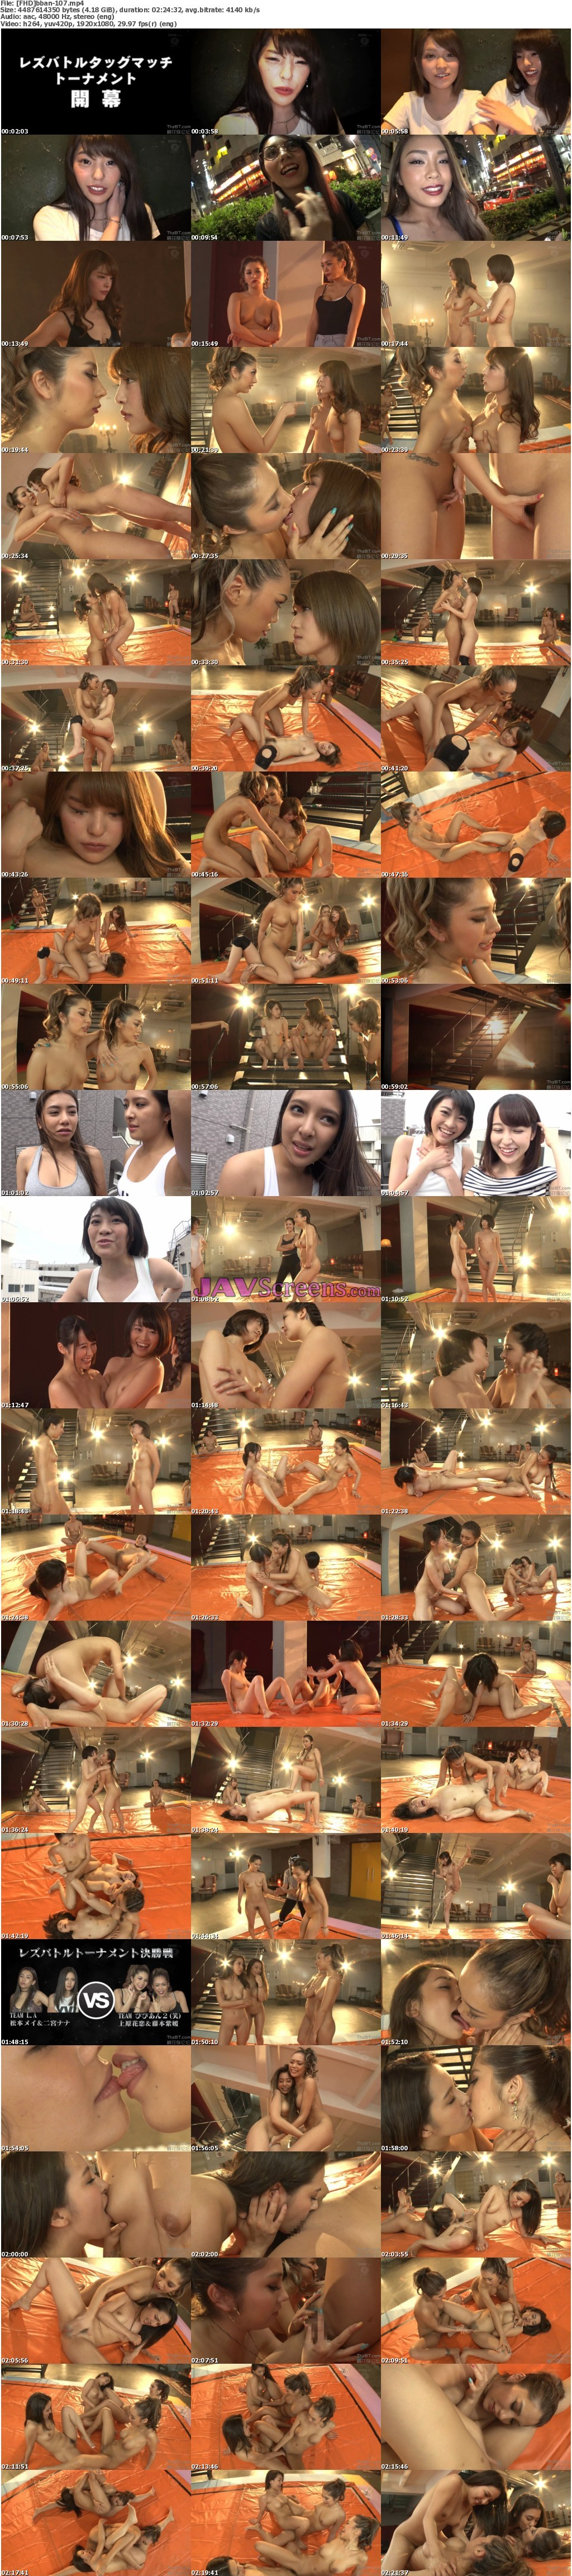 BBAN-107.jpg - JAV Screenshot